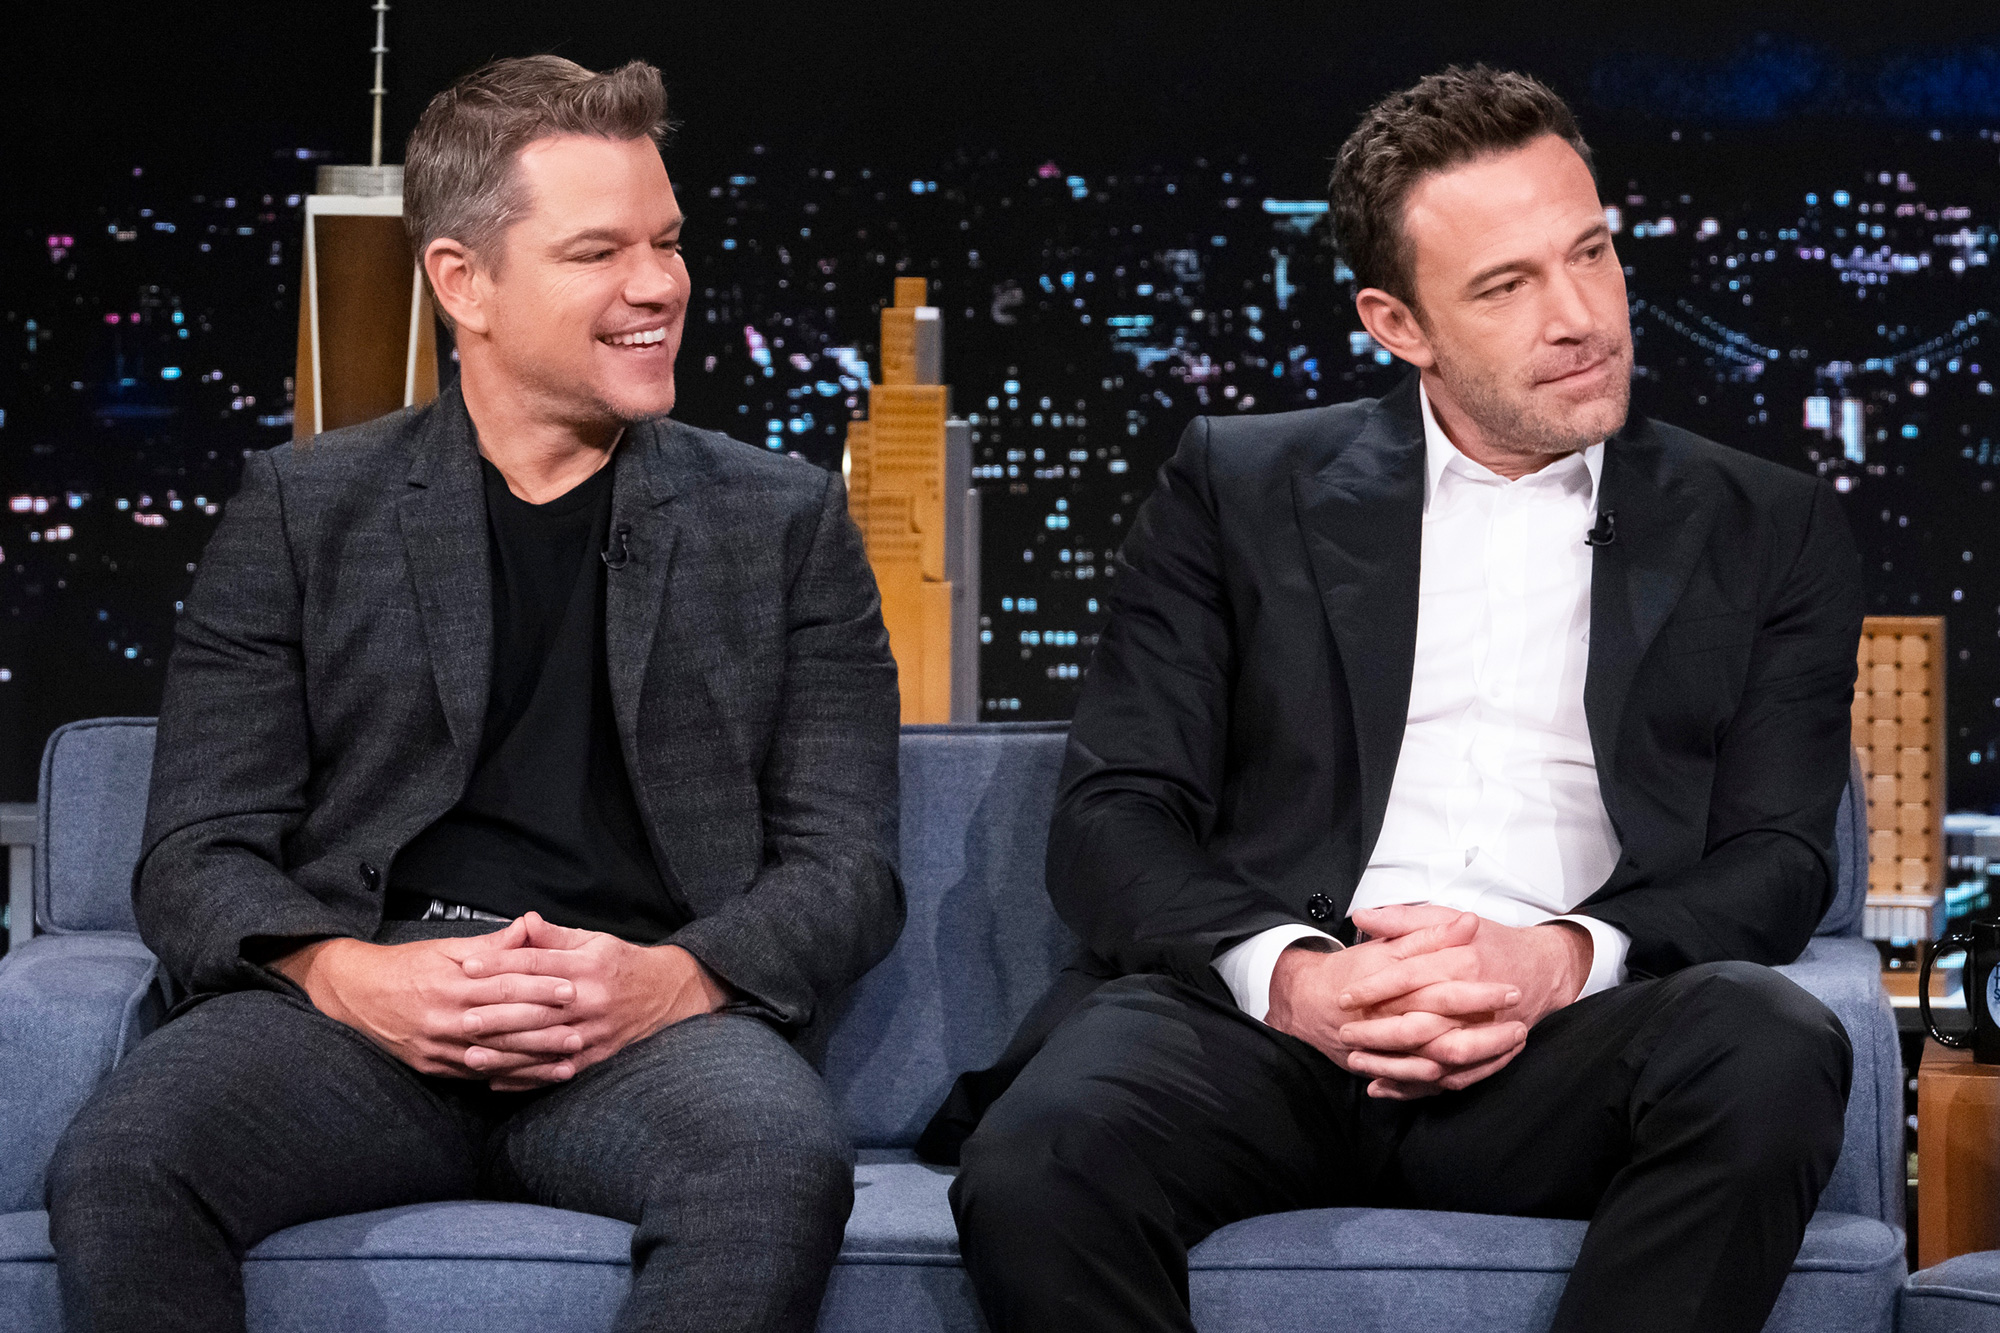 THE TONIGHT SHOW STARRING JIMMY FALLON -- Episode 1535 -- Pictured: (l-r) Actor Matt Damon and actor Ben Affleck during an interview on Wednesday, October 13, 2021